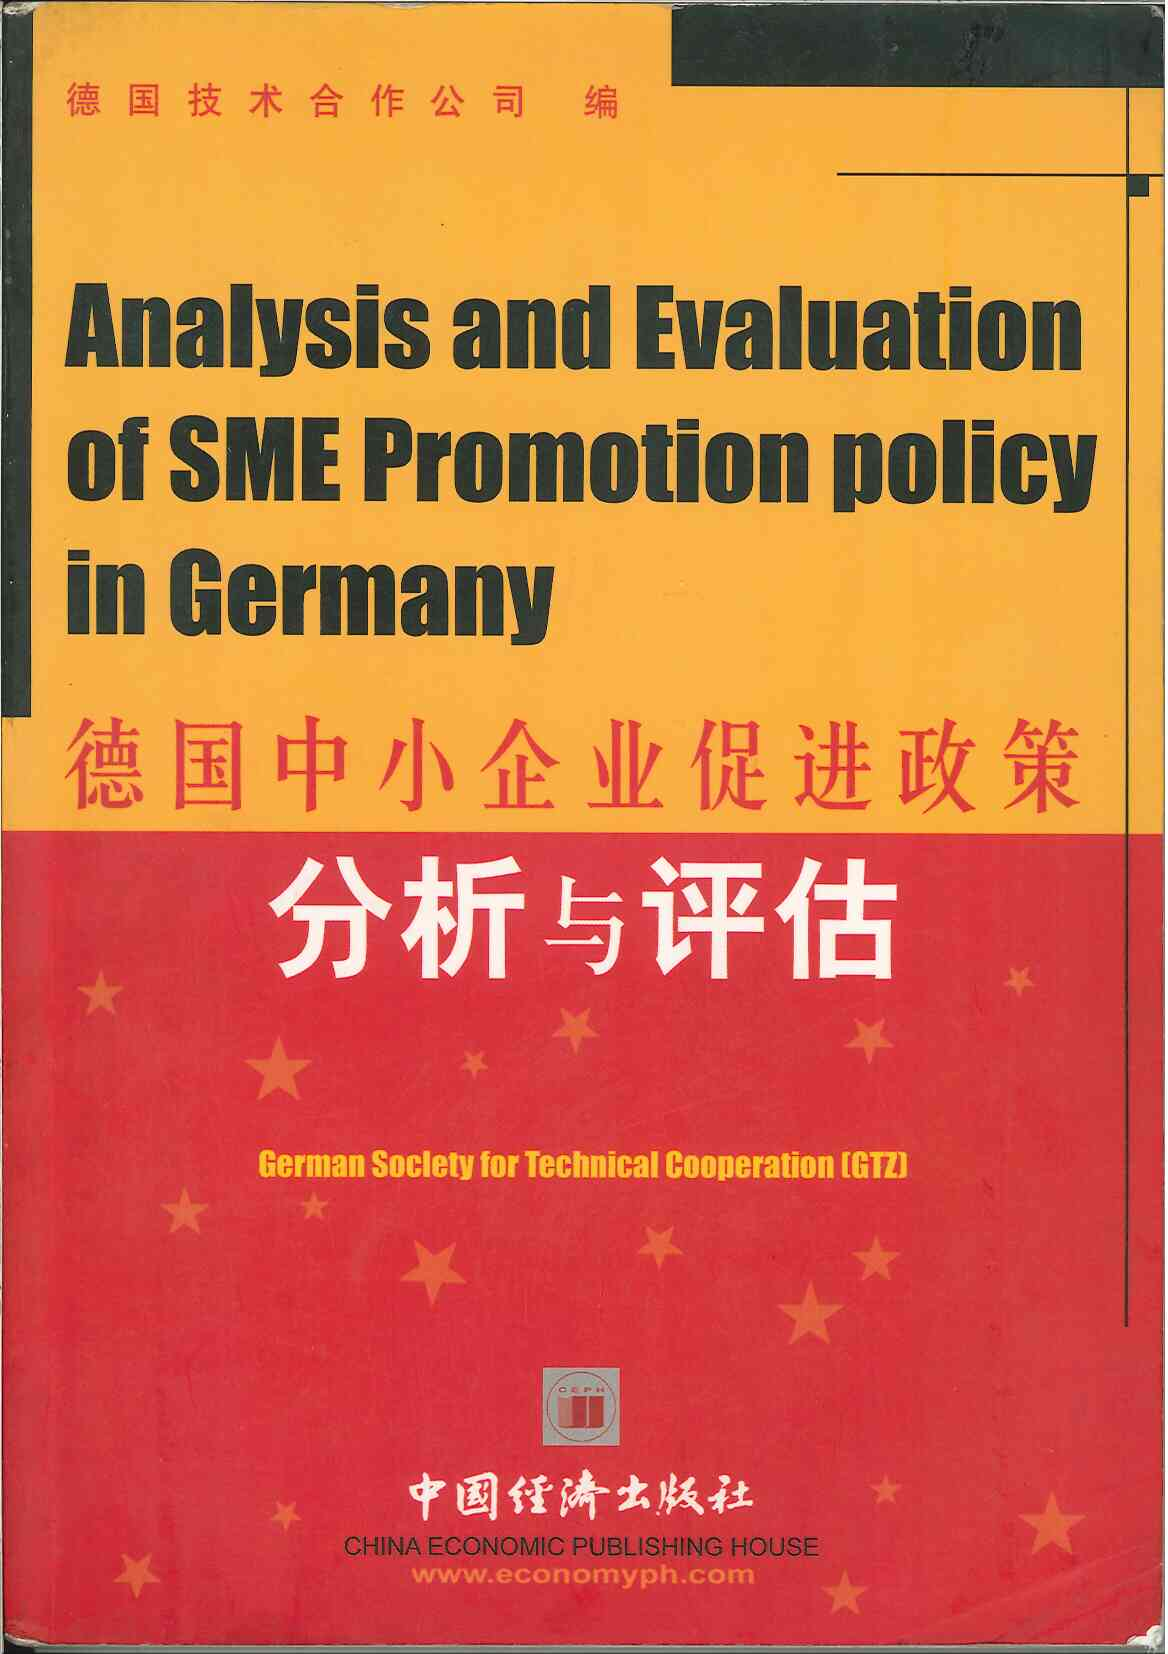 德国中小企业促进政策分析与评估=Analysis and evaluation of SME promotion policy in Germany